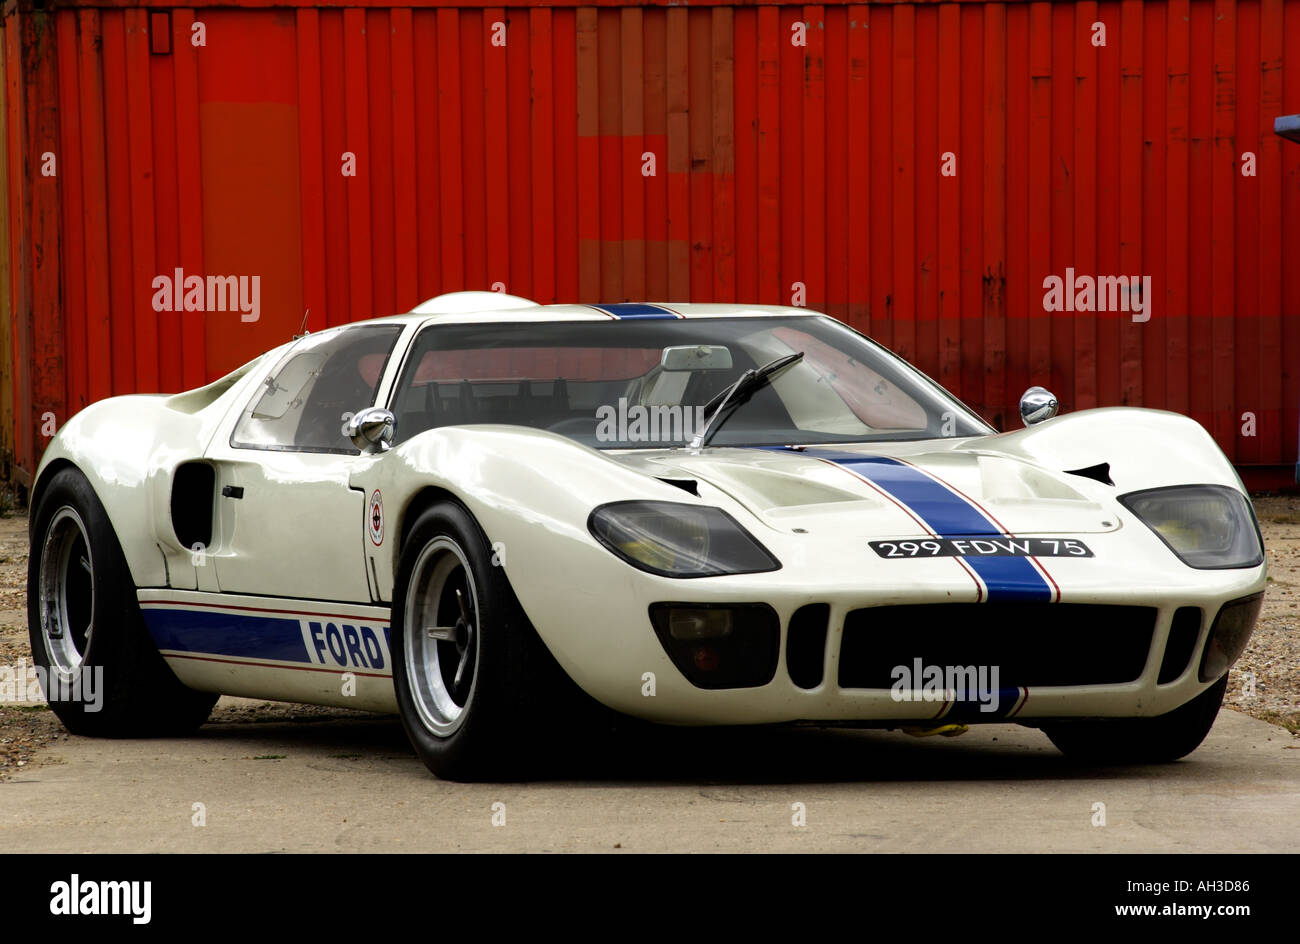 Ford Gt  Racing Car Original Car Not A Replica Stock Image